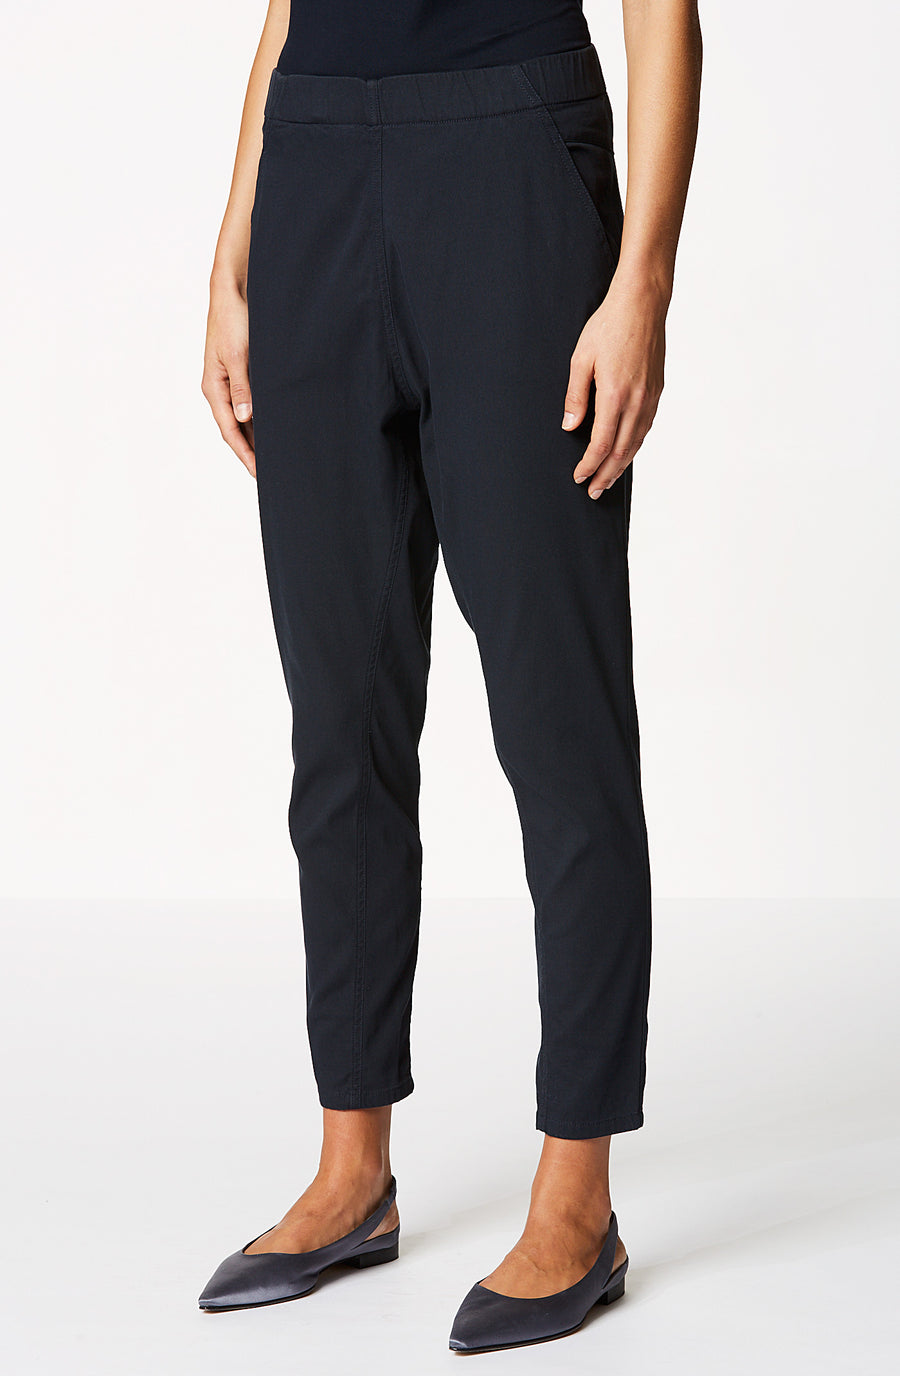 Washed Low Rise Boyfriend Trouser, sit on the hips, relaxed fit through thighs, elastic waist, slanted front and welted back pockets, color navy